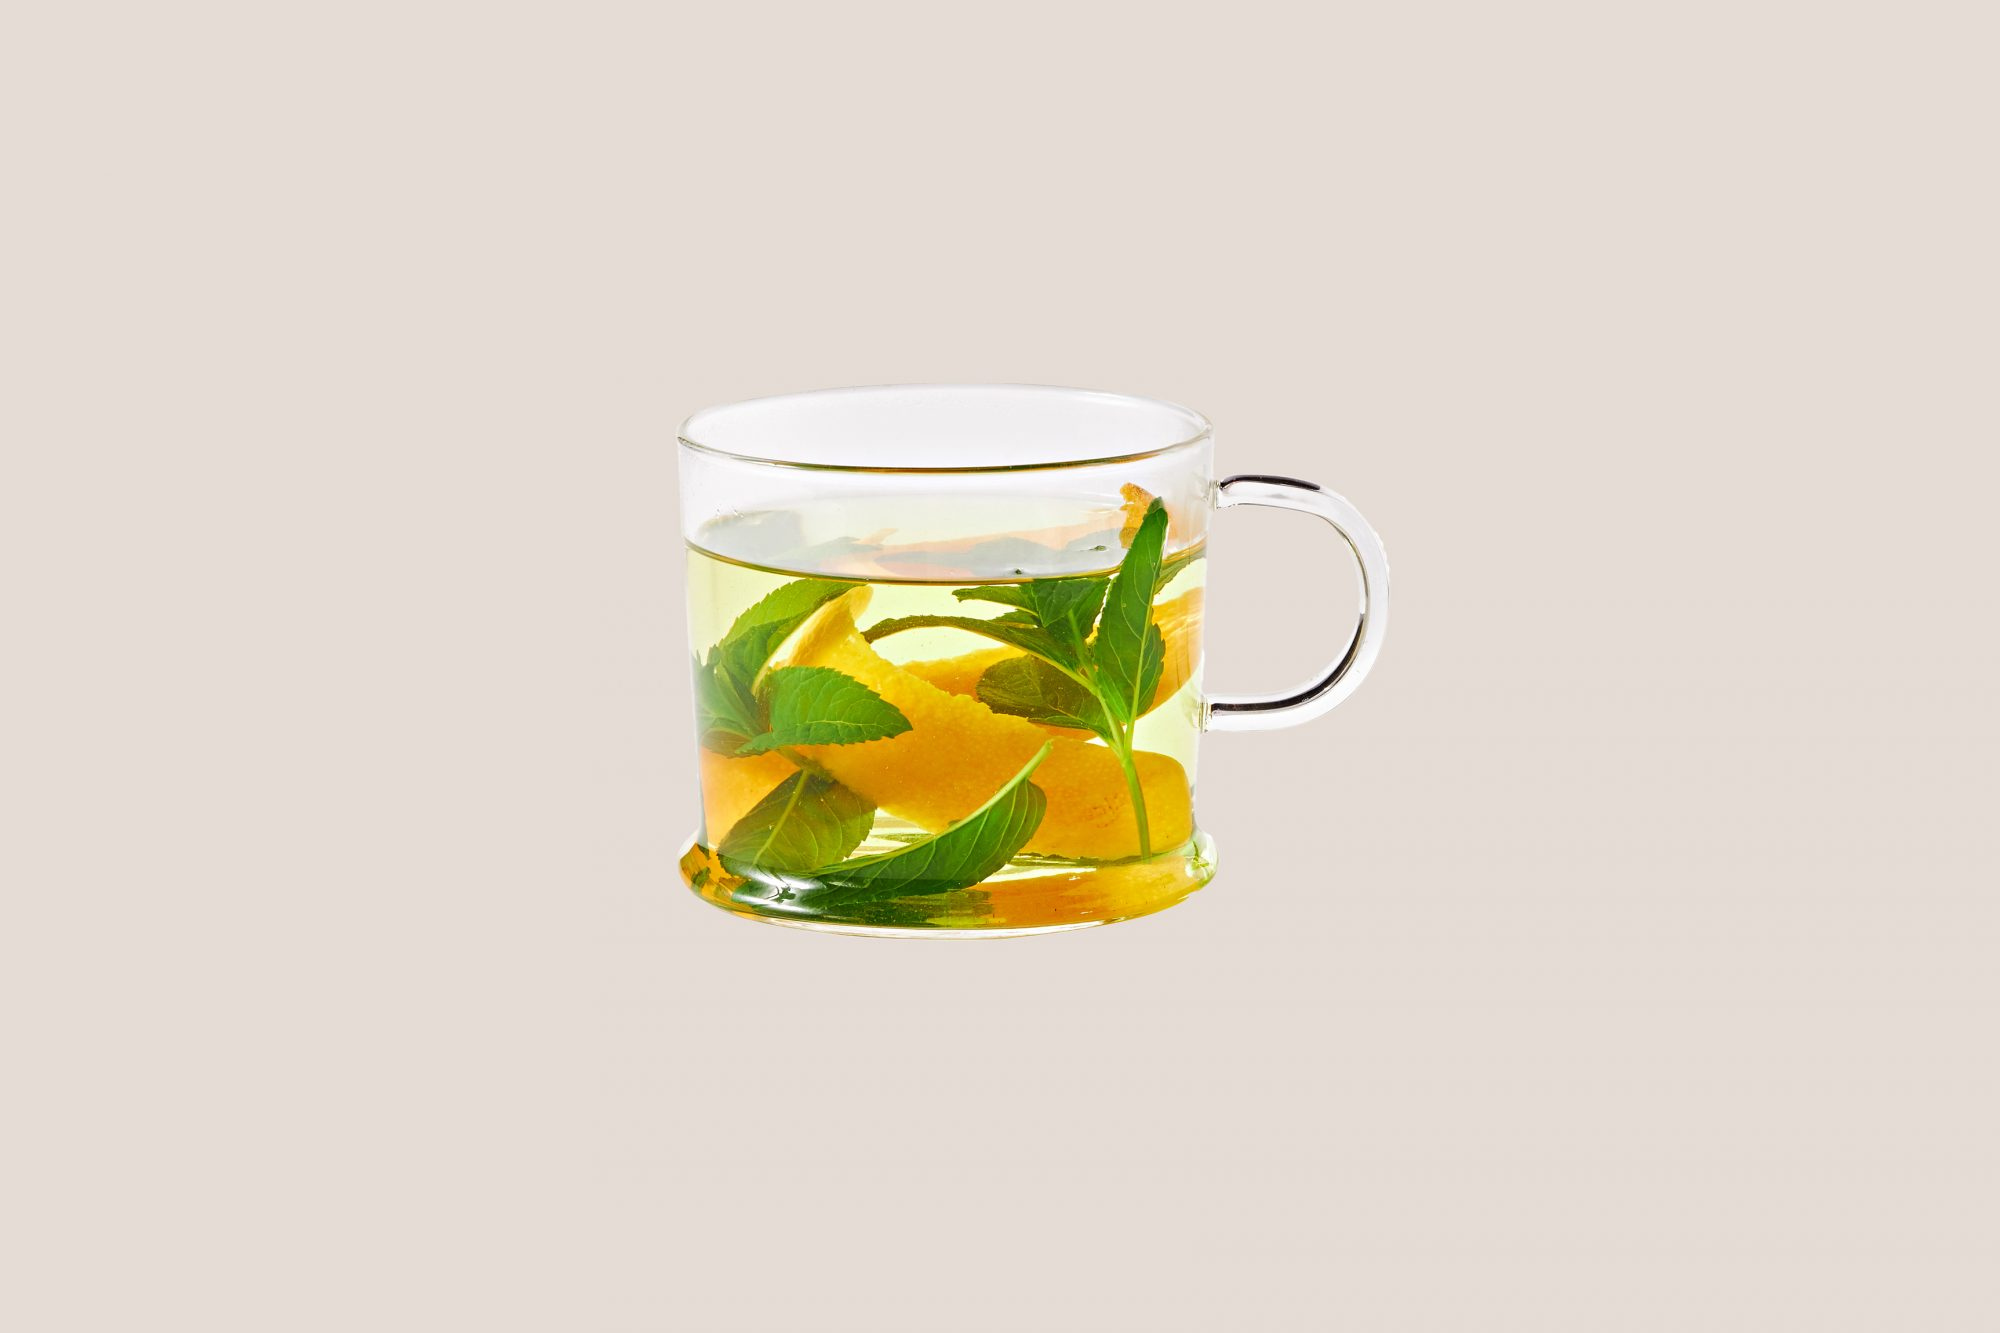 orange and mint tea in glass